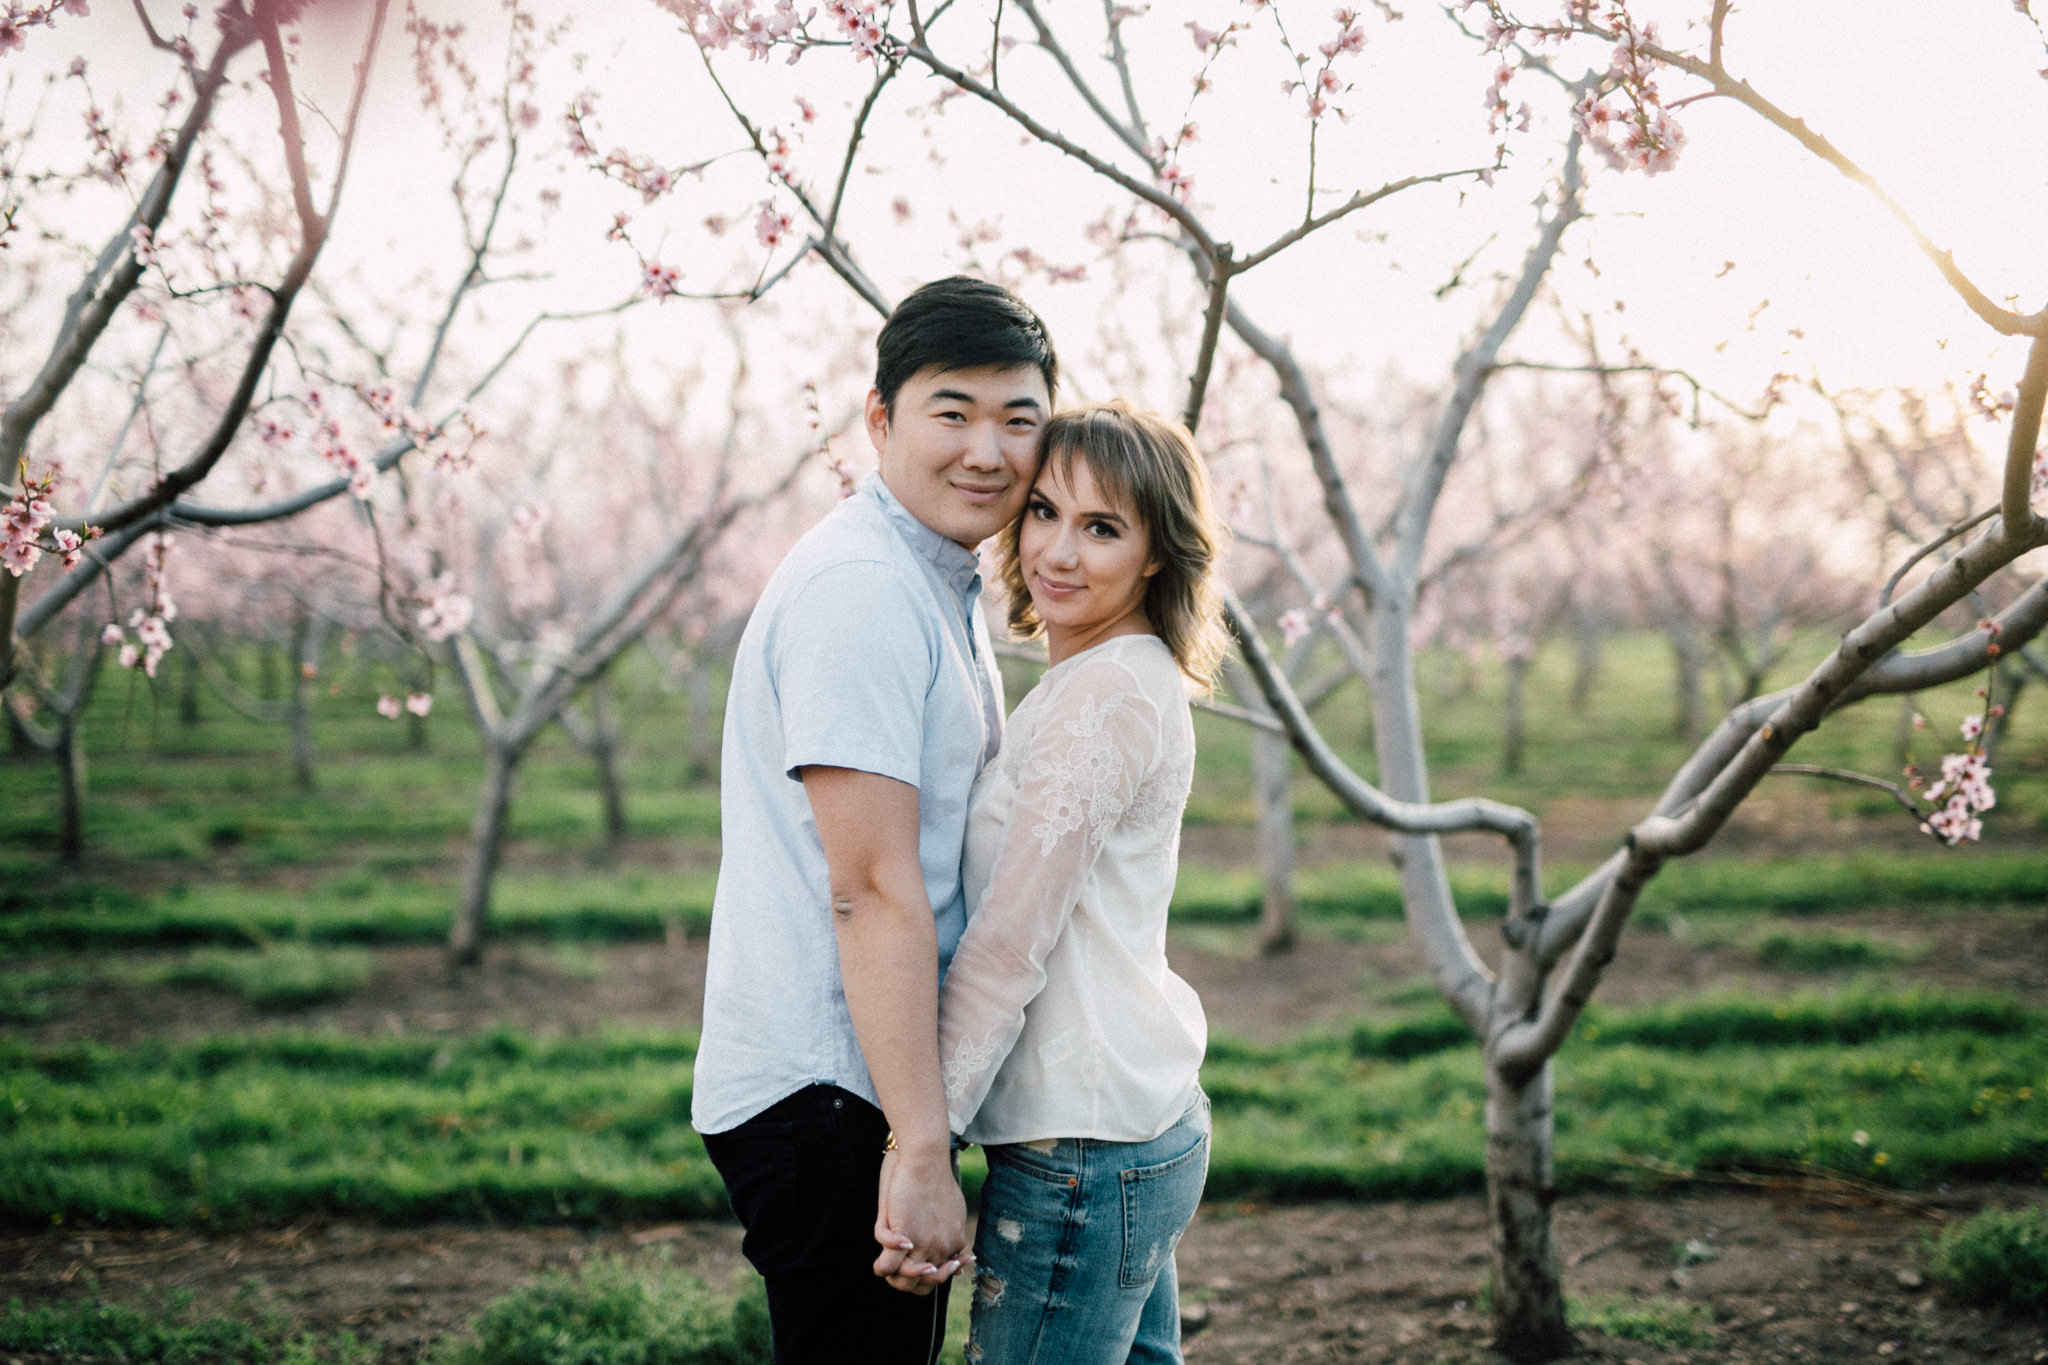 Niagara-Portrait-Session-Niagara-On-The-Lake-Cherry-Blossoms-photography-by-Simply-Lace-Photography-091.JPG